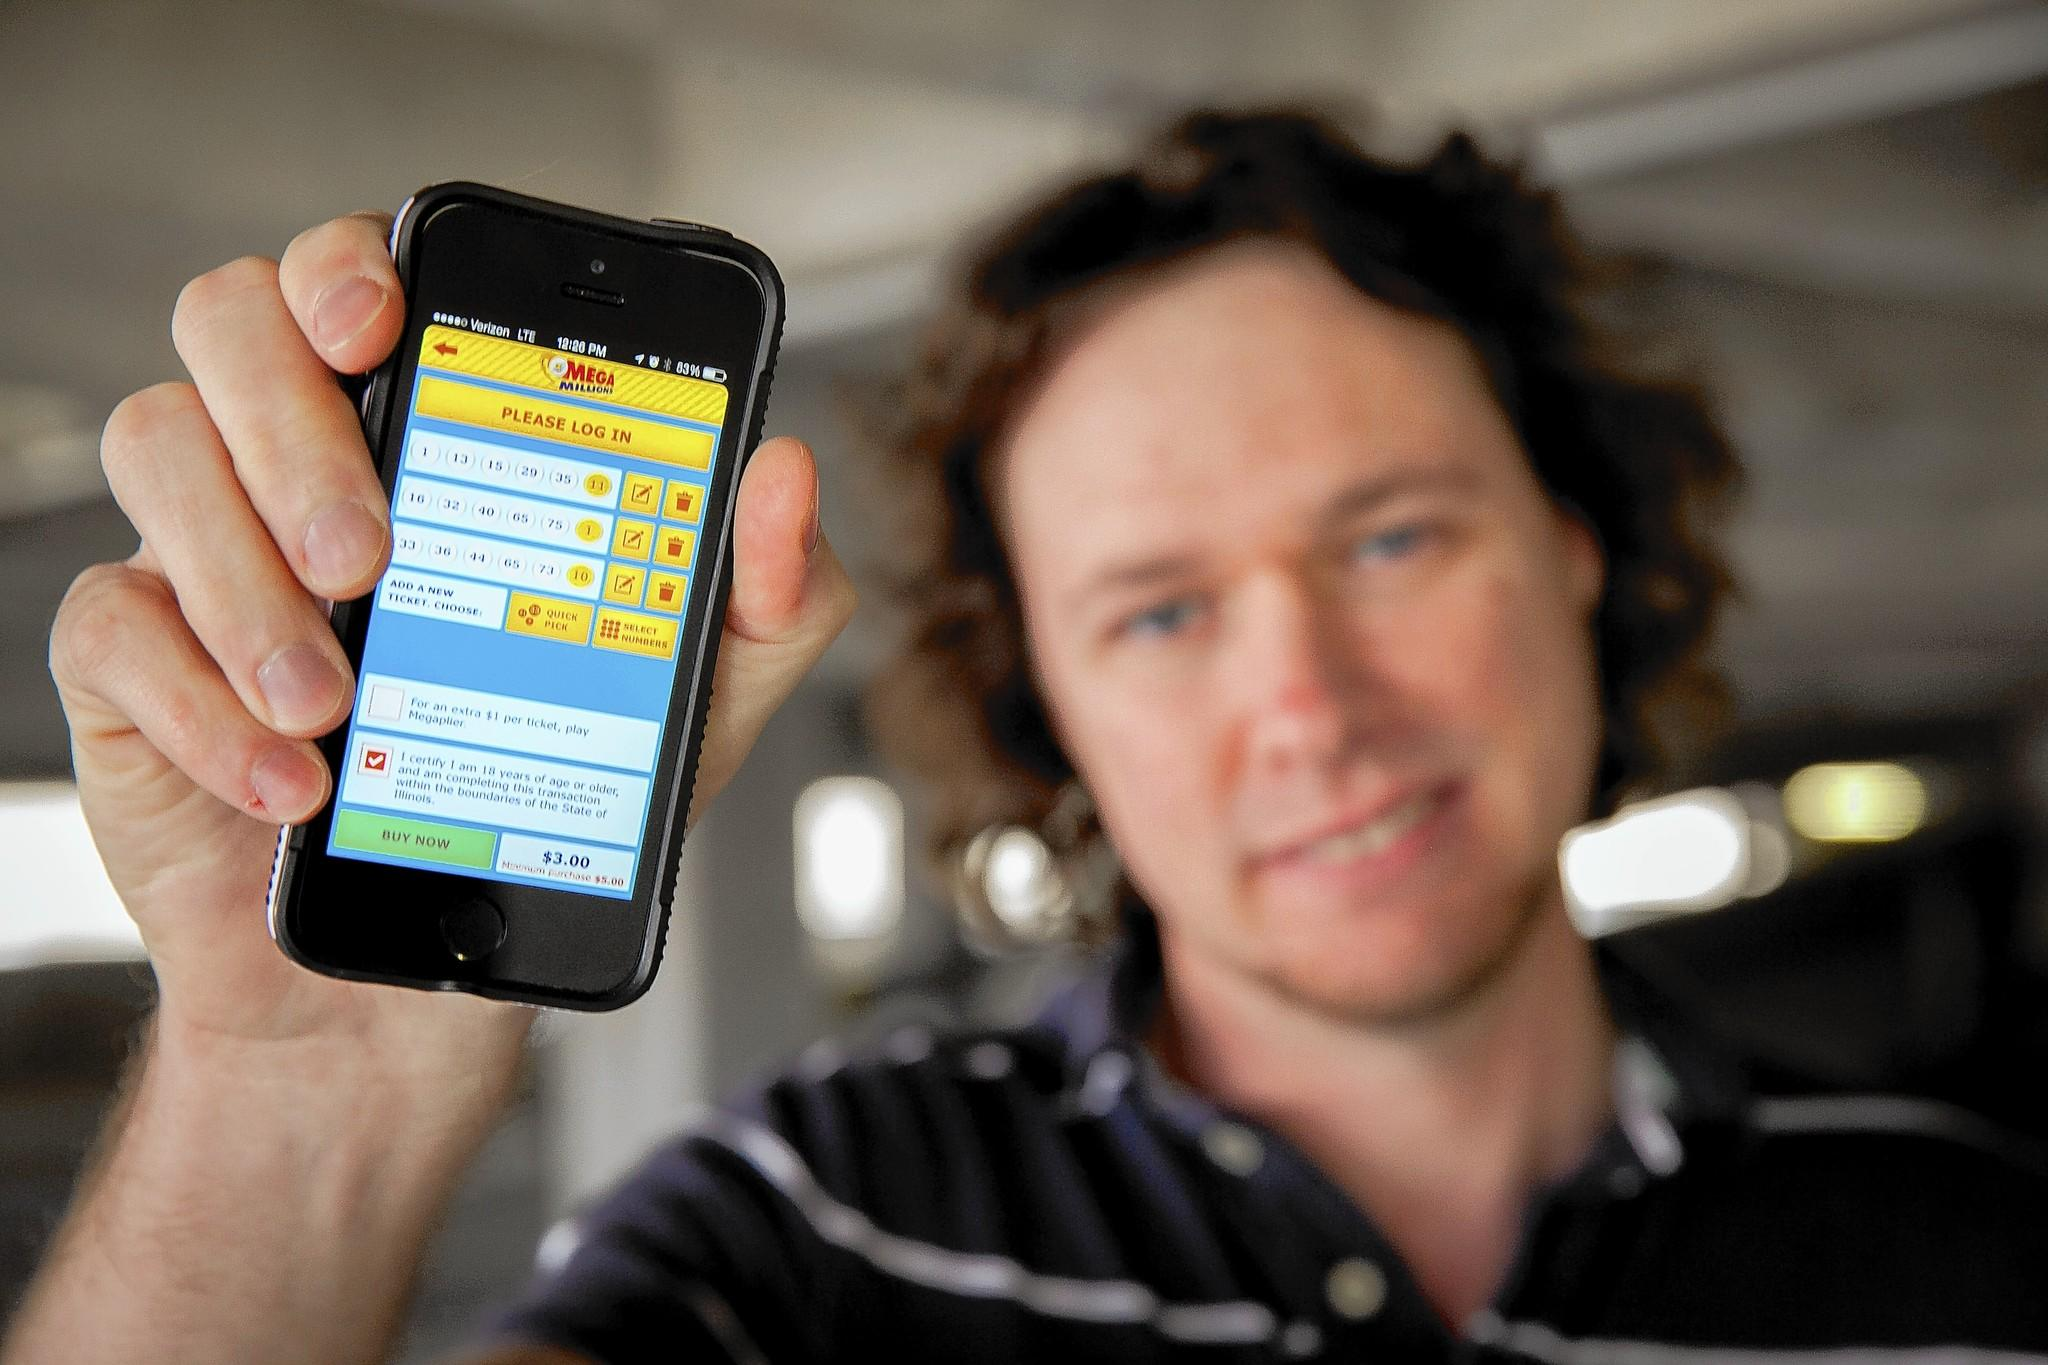 Matthew Ruder, of Pekin, Ill., displays the Illinois Lottery app on his smartphone this month in Peoria, Ill. Ruder likes the convenience of the app for buying tickets.